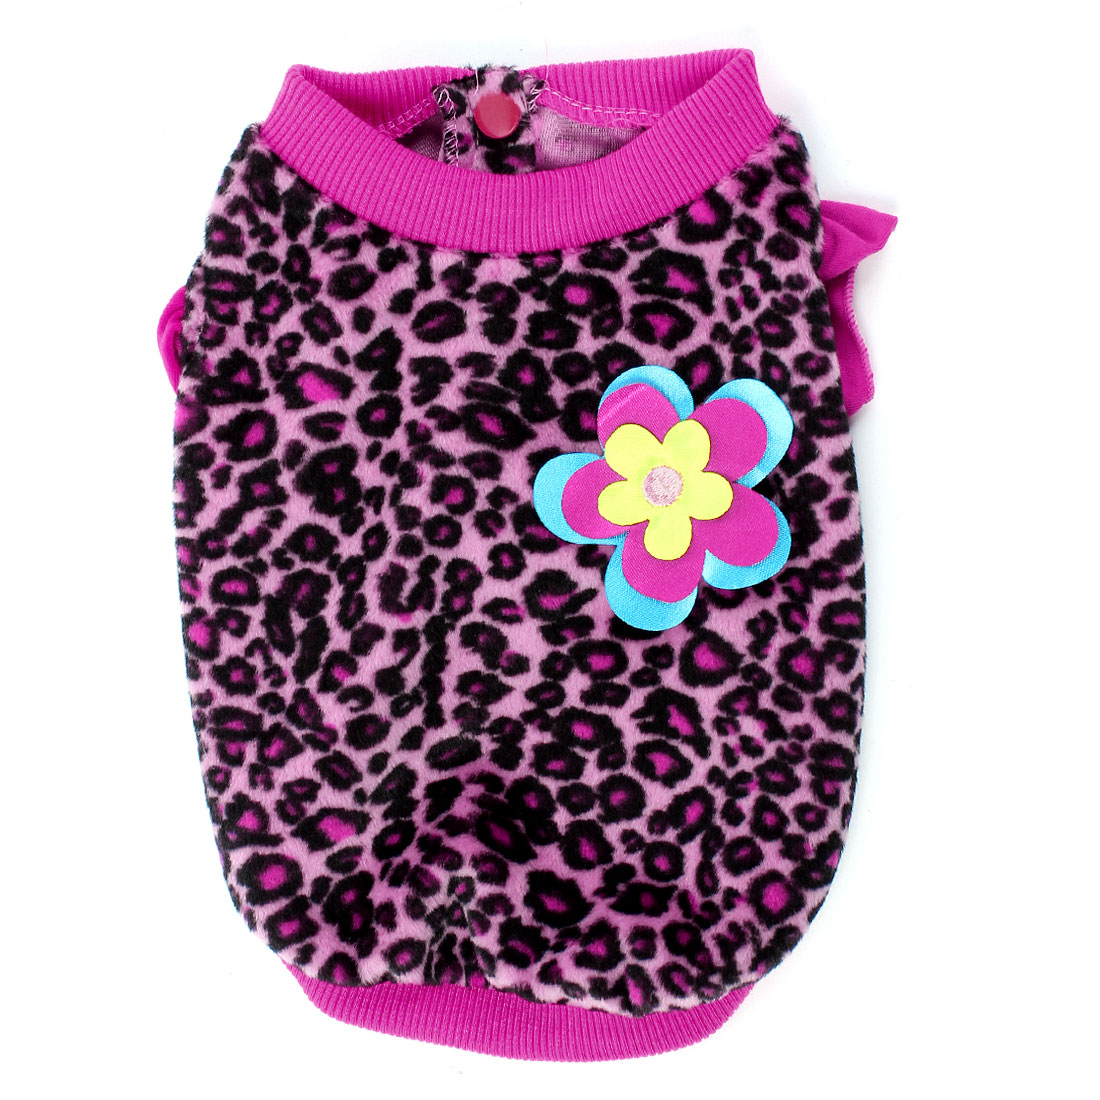 Ruffled Cuff Leopard Pattern Pet Dog Doggy Coat Apparel Black Fuchsia S